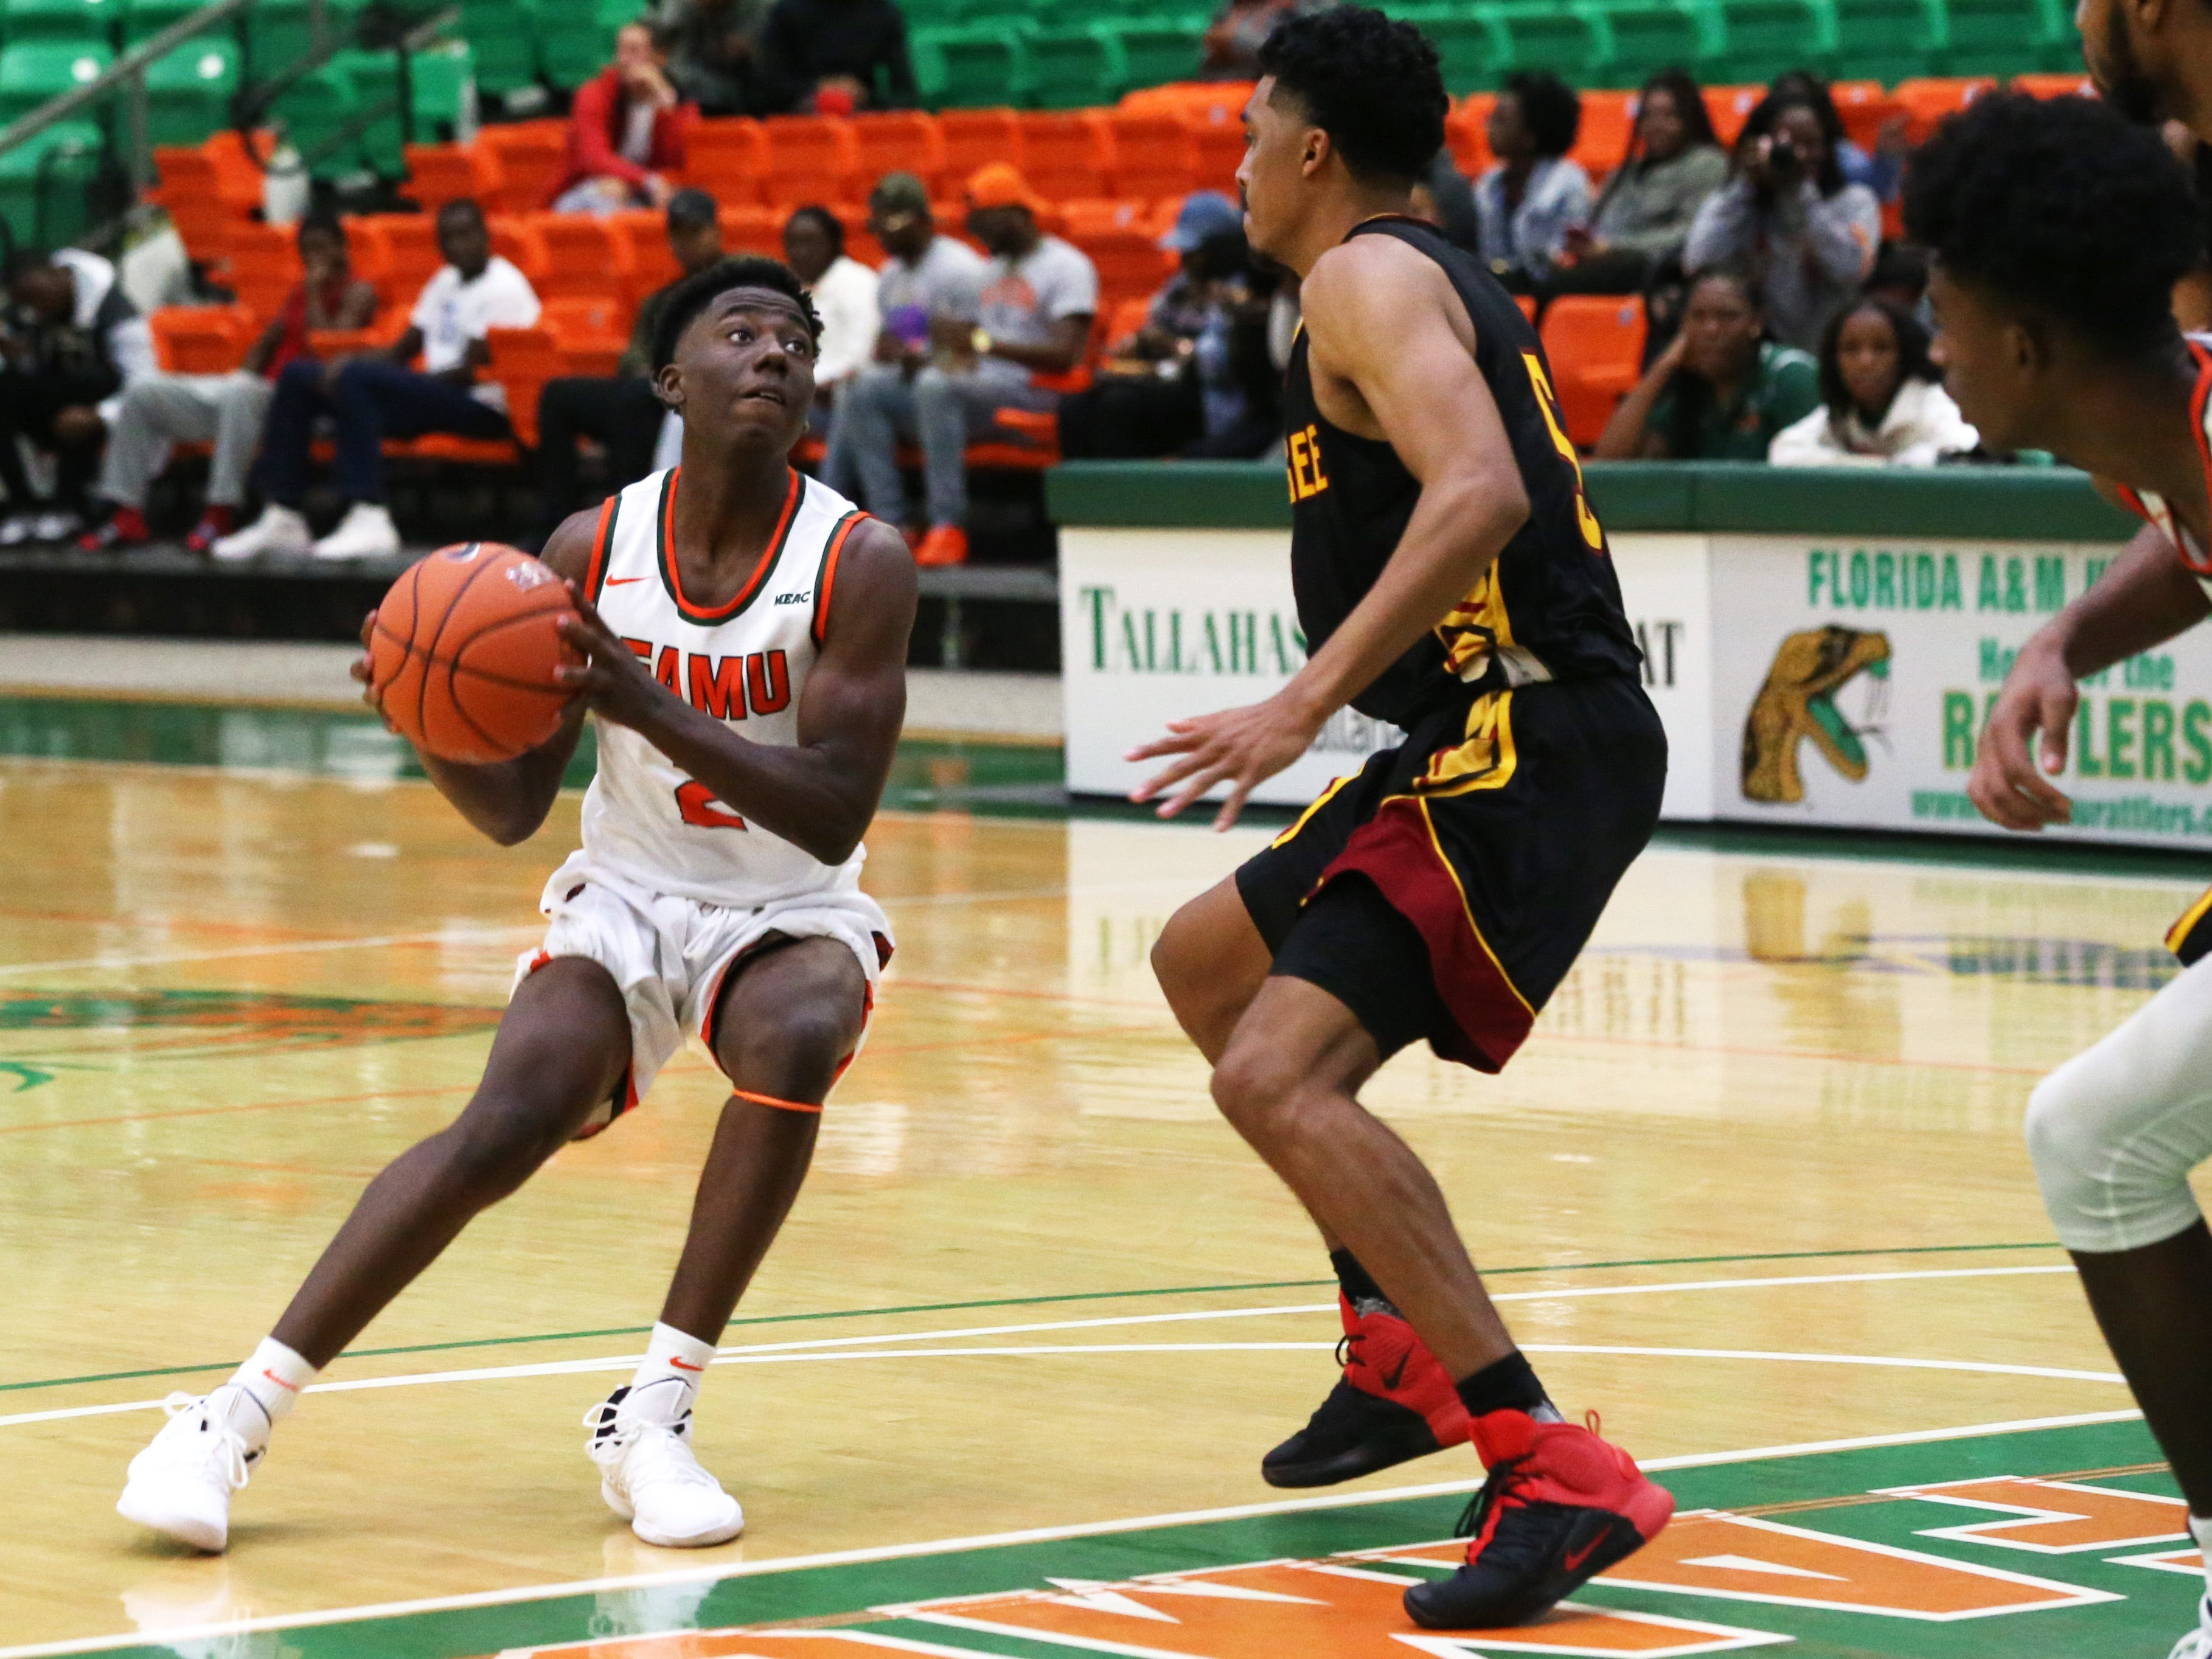 Florida A&M guard Kamron Reaves (2) looks to shoot over Tuskegee's defense. The Rattlers won their first home game of the season on Saturday, Nov. 10.